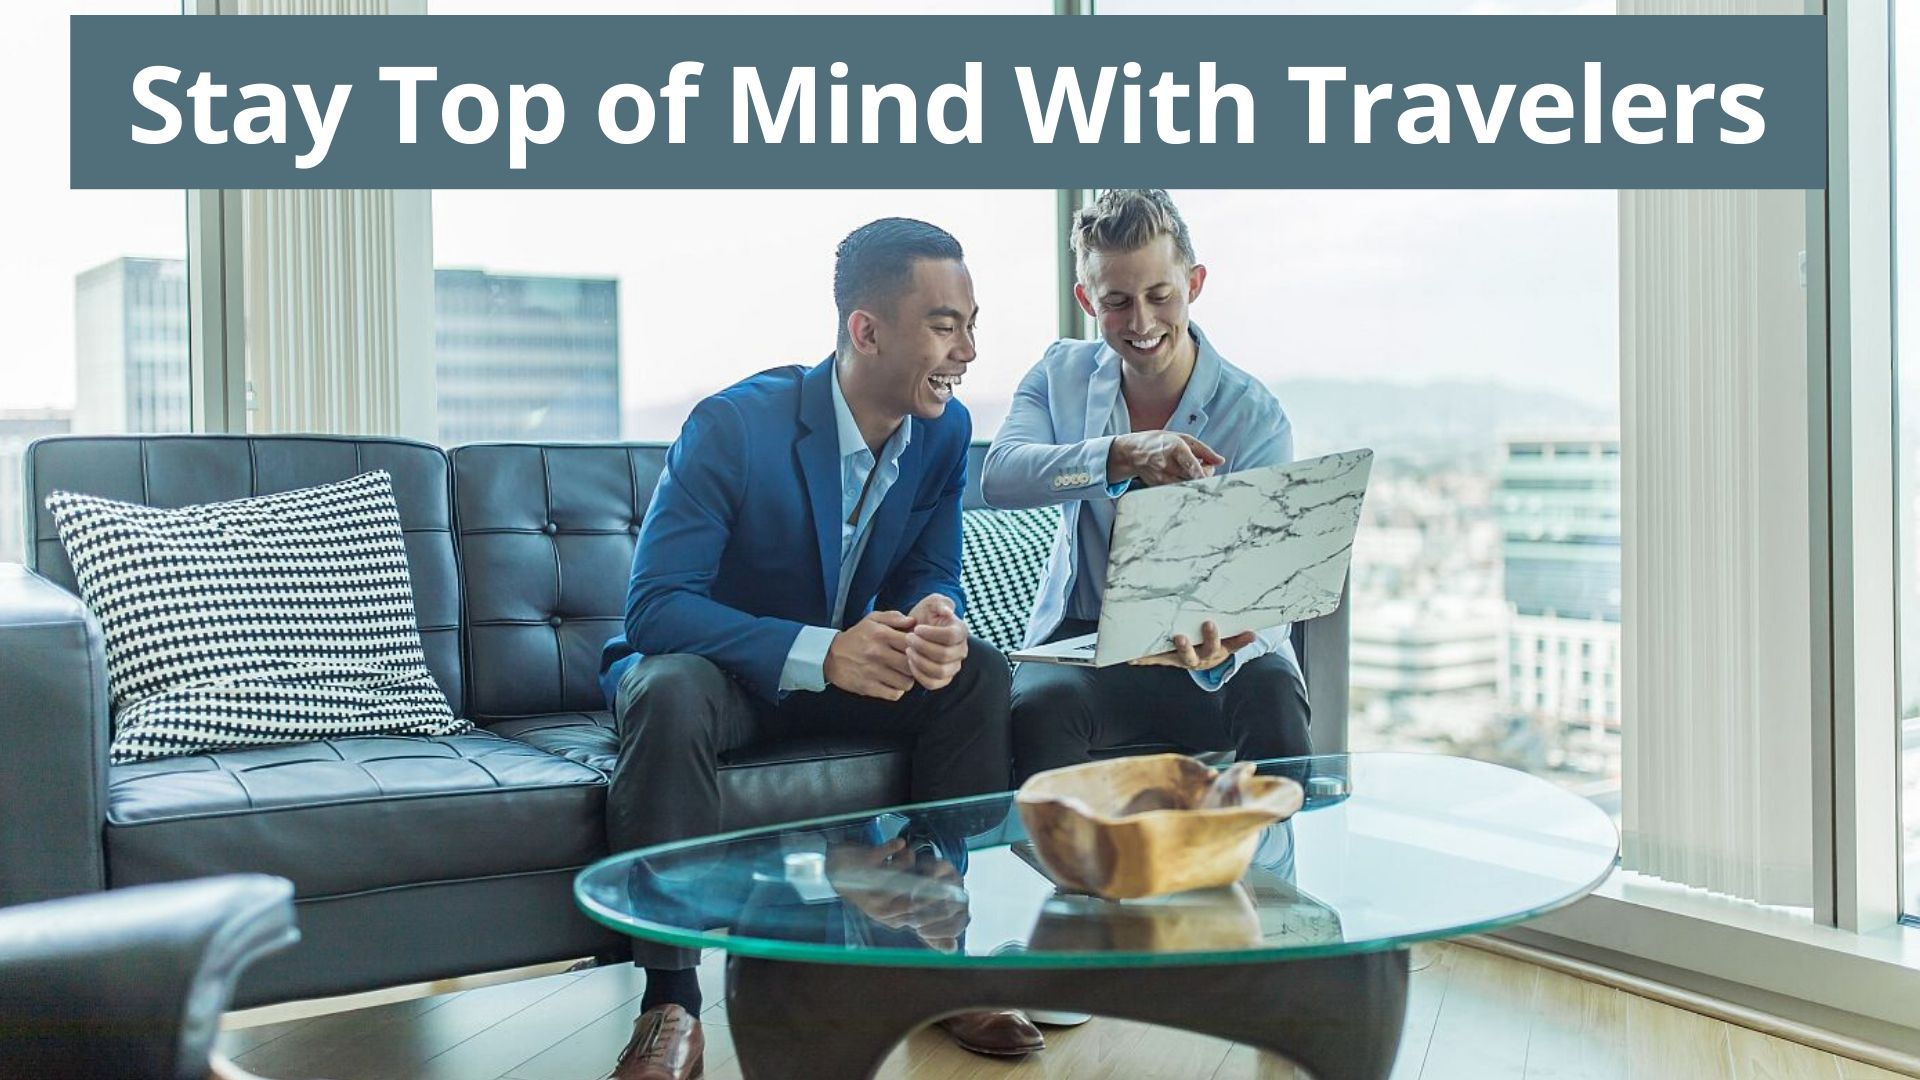 stay top of mind with travelers